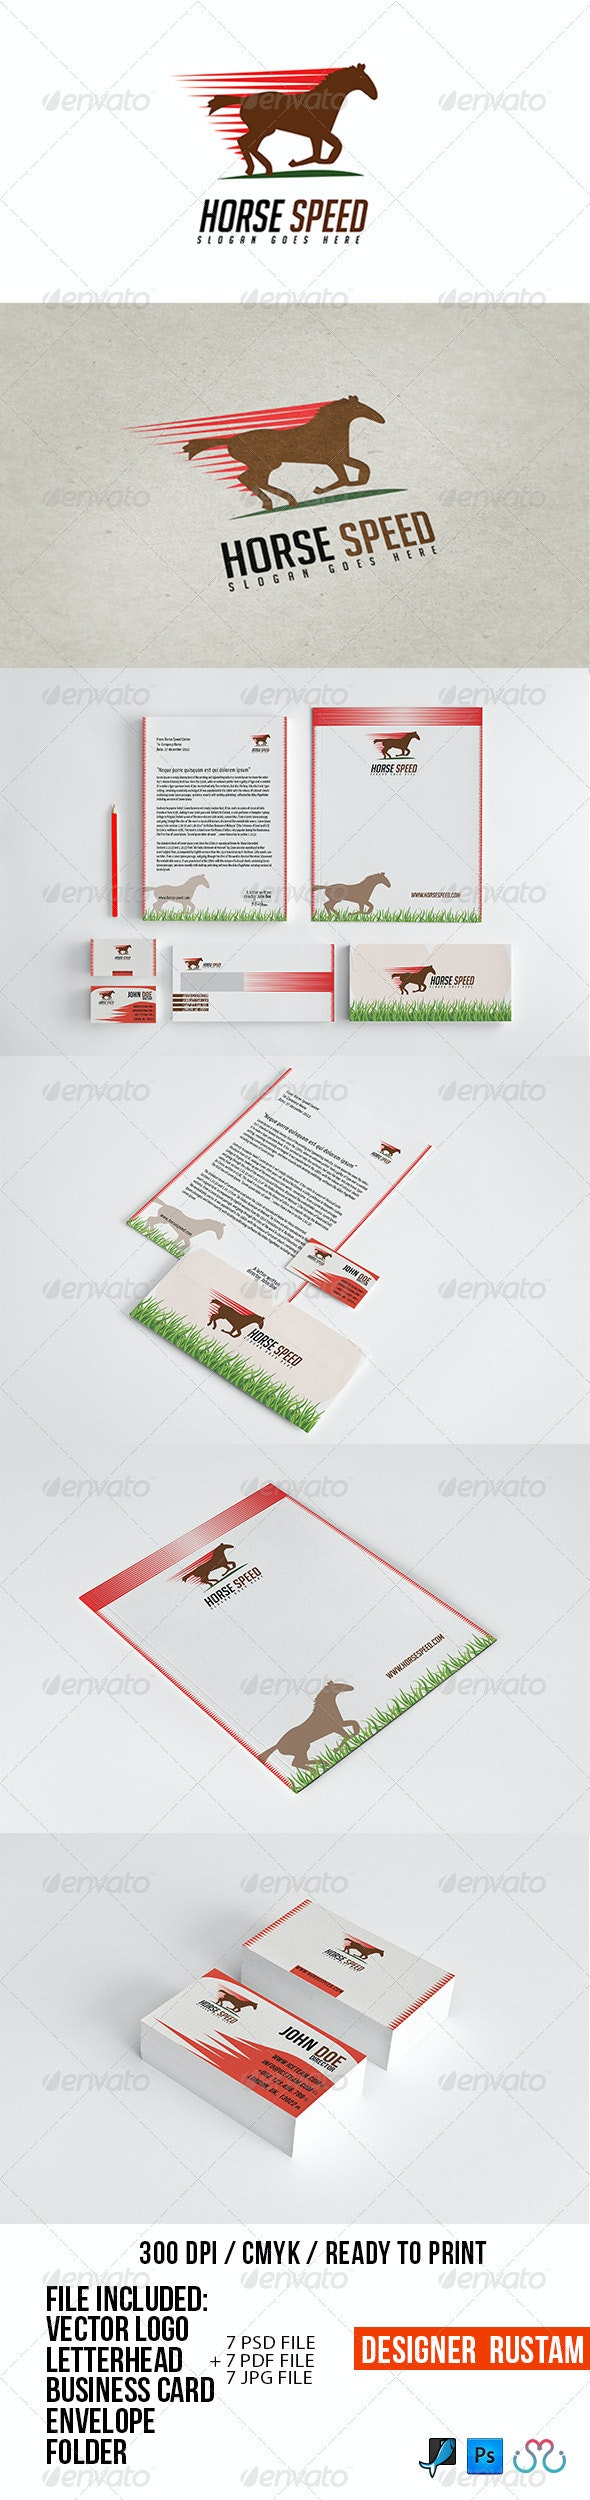 Horse Speed Stationery - Stationery Print Templates